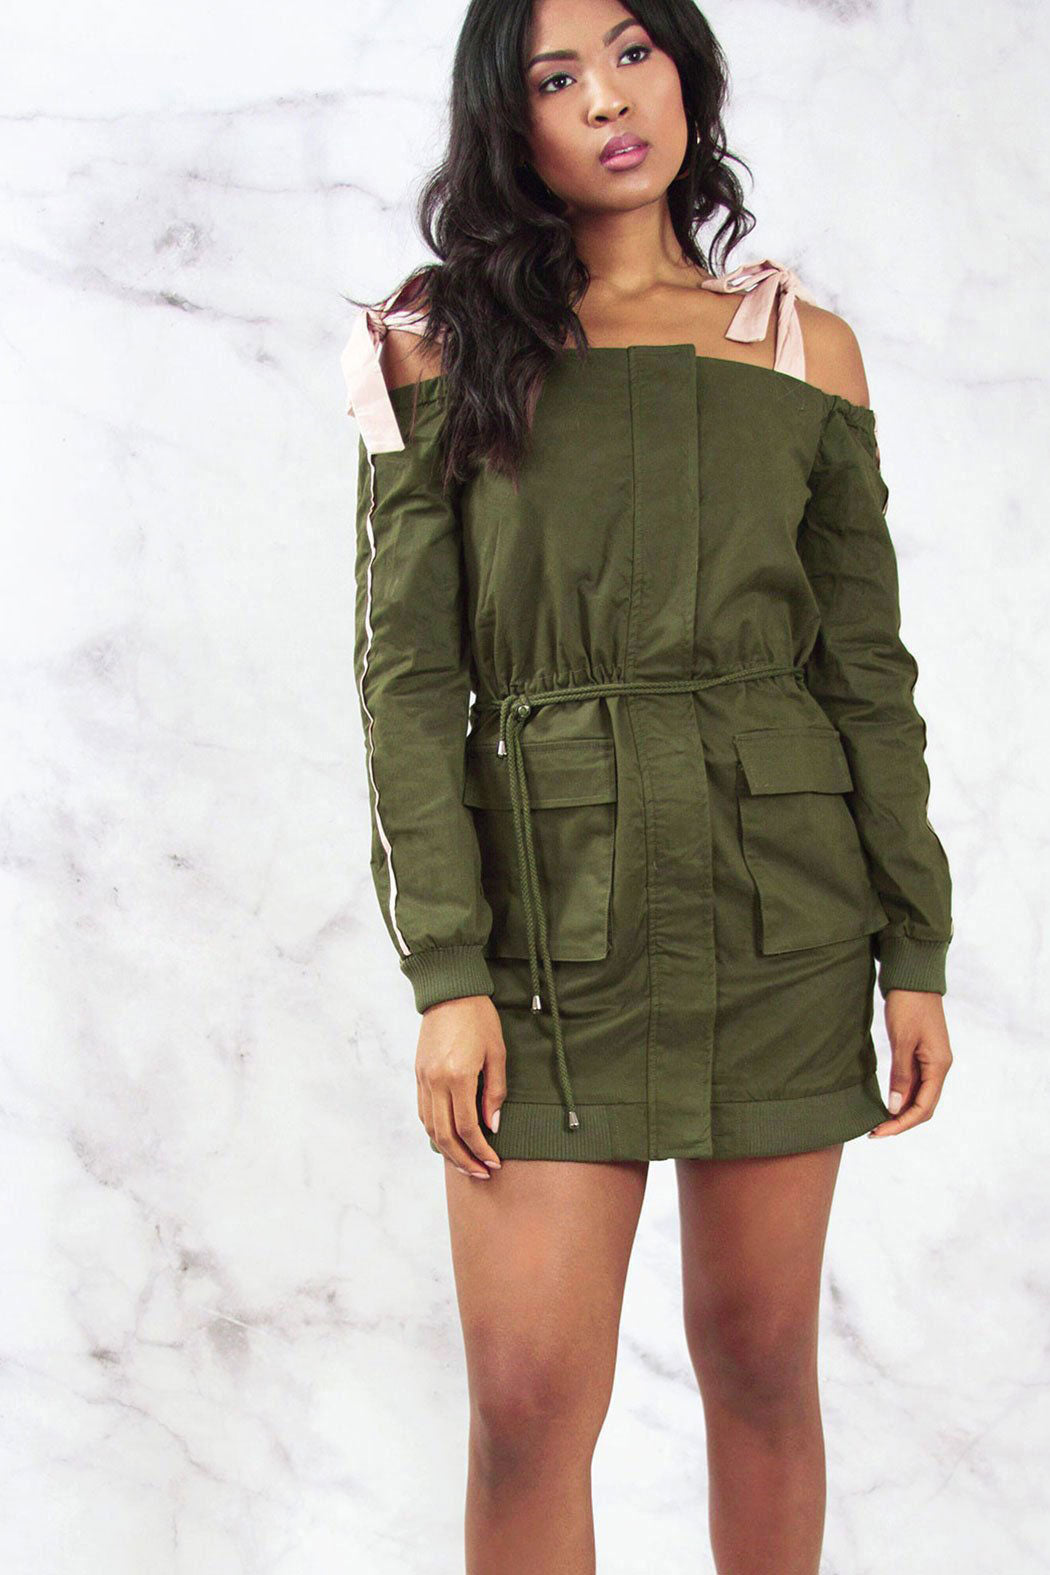 Parka Style Jacket Dress - Snatched